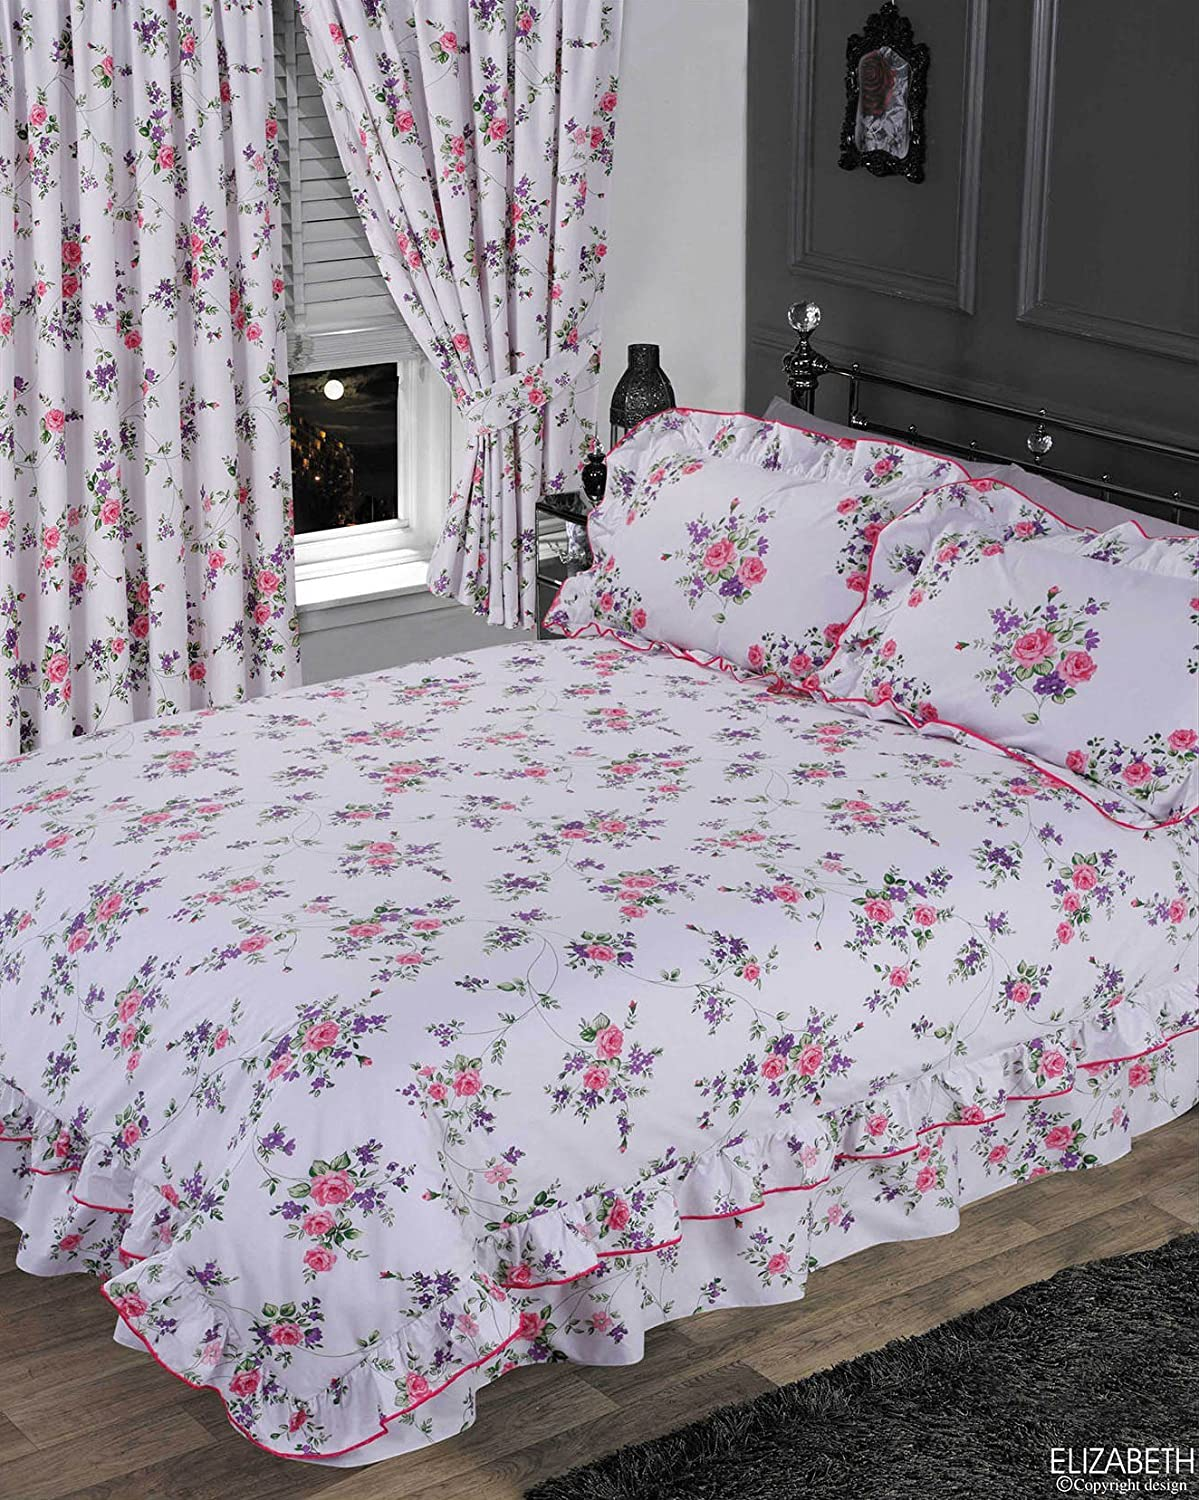 LIZ WHITE FLORAL FRILLED PURPLE PINK GREEN LILAC TRADITIONAL BEDDING OR CURTAINS